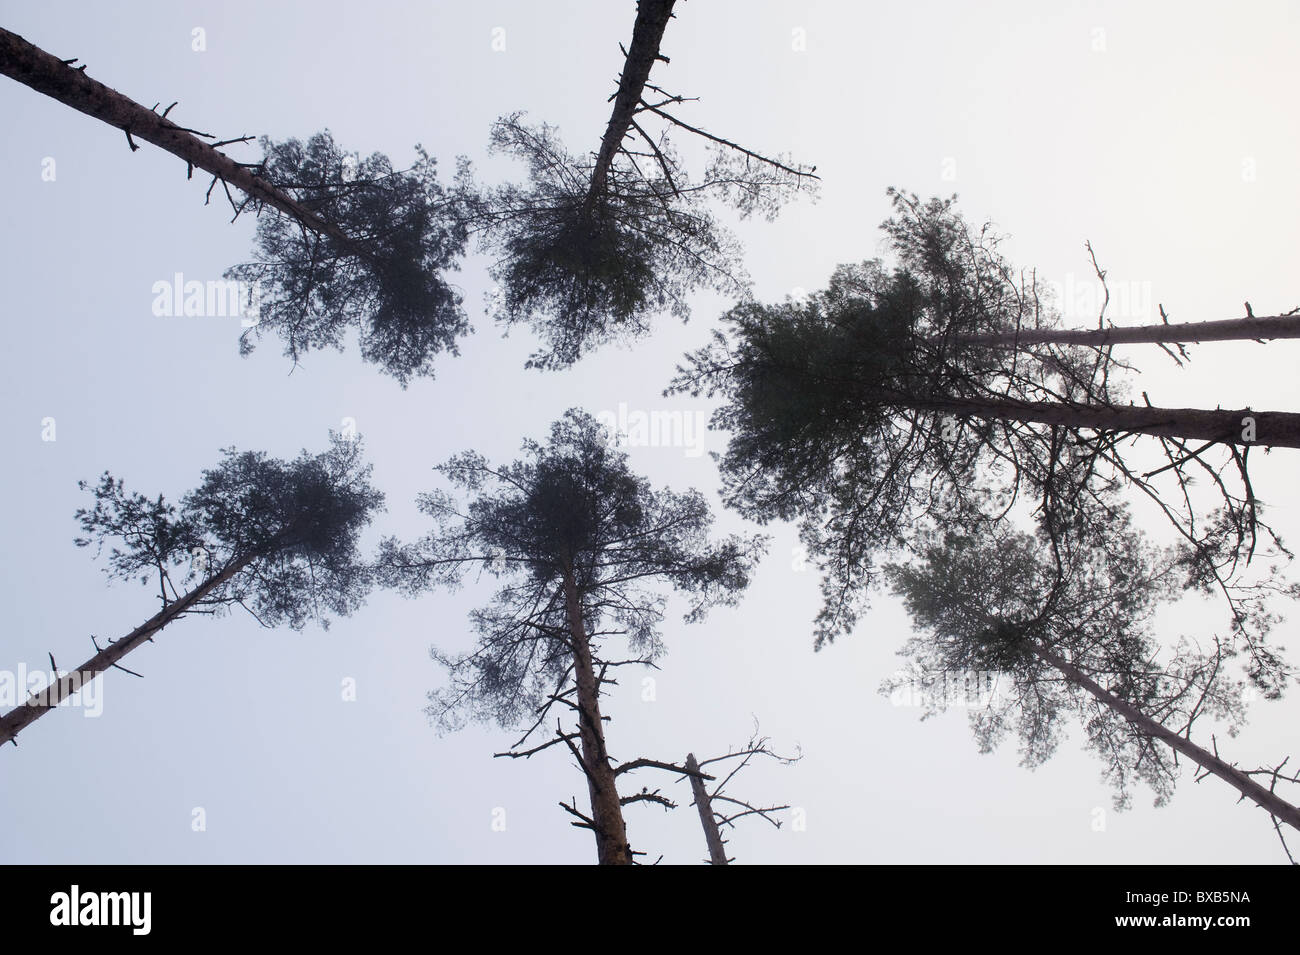 Tall trees against sky - Stock Image